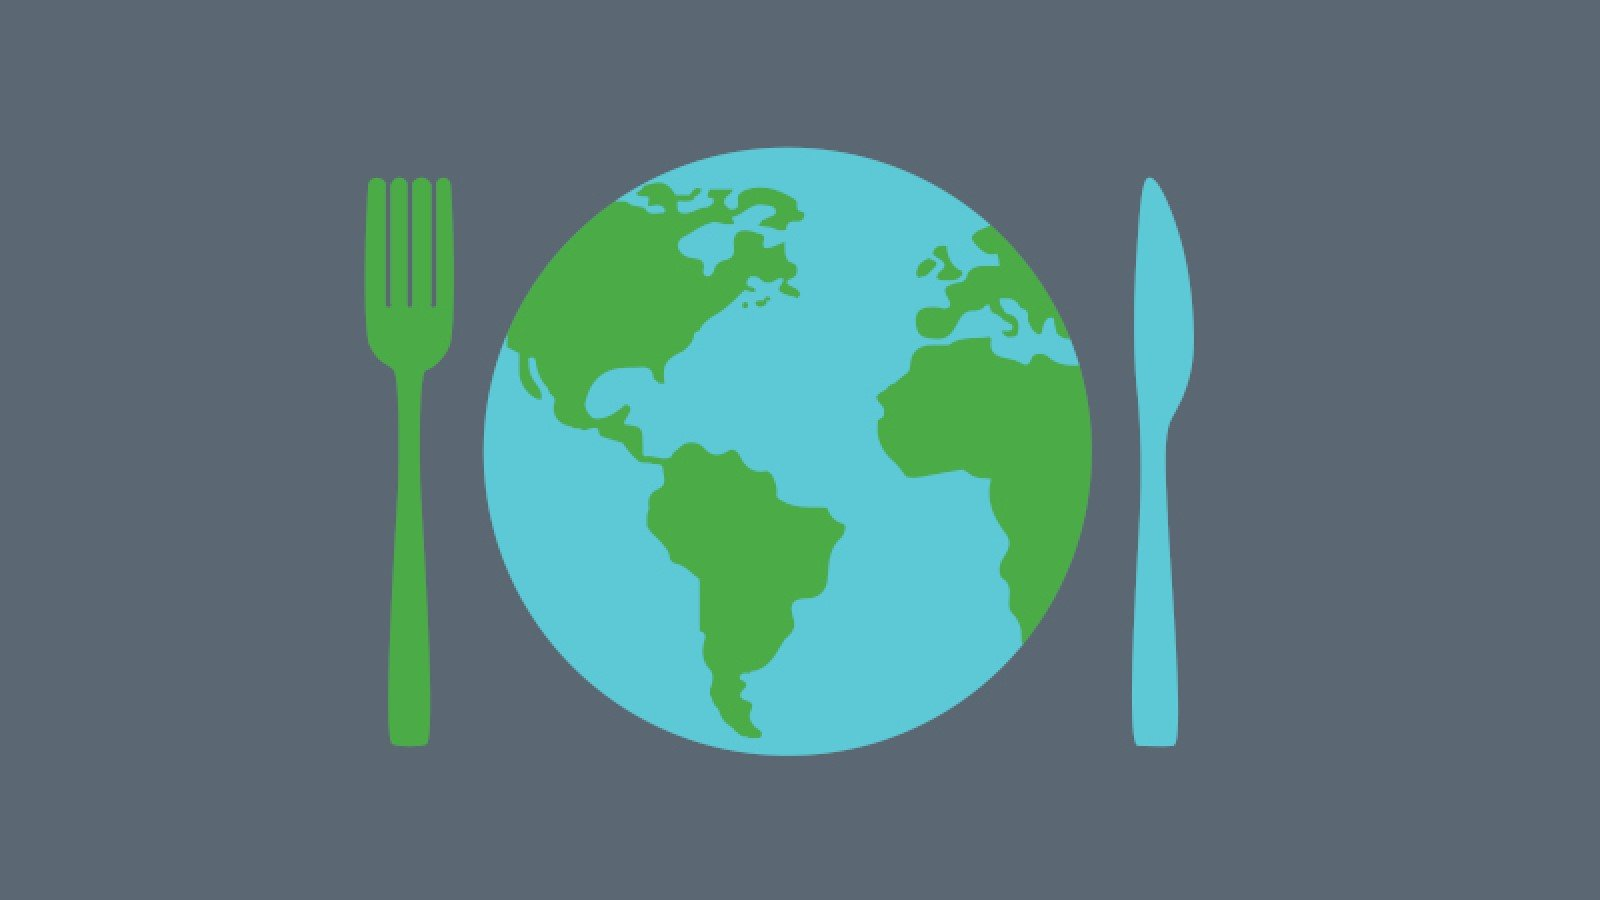 Hungry for change - the power is on your plate!